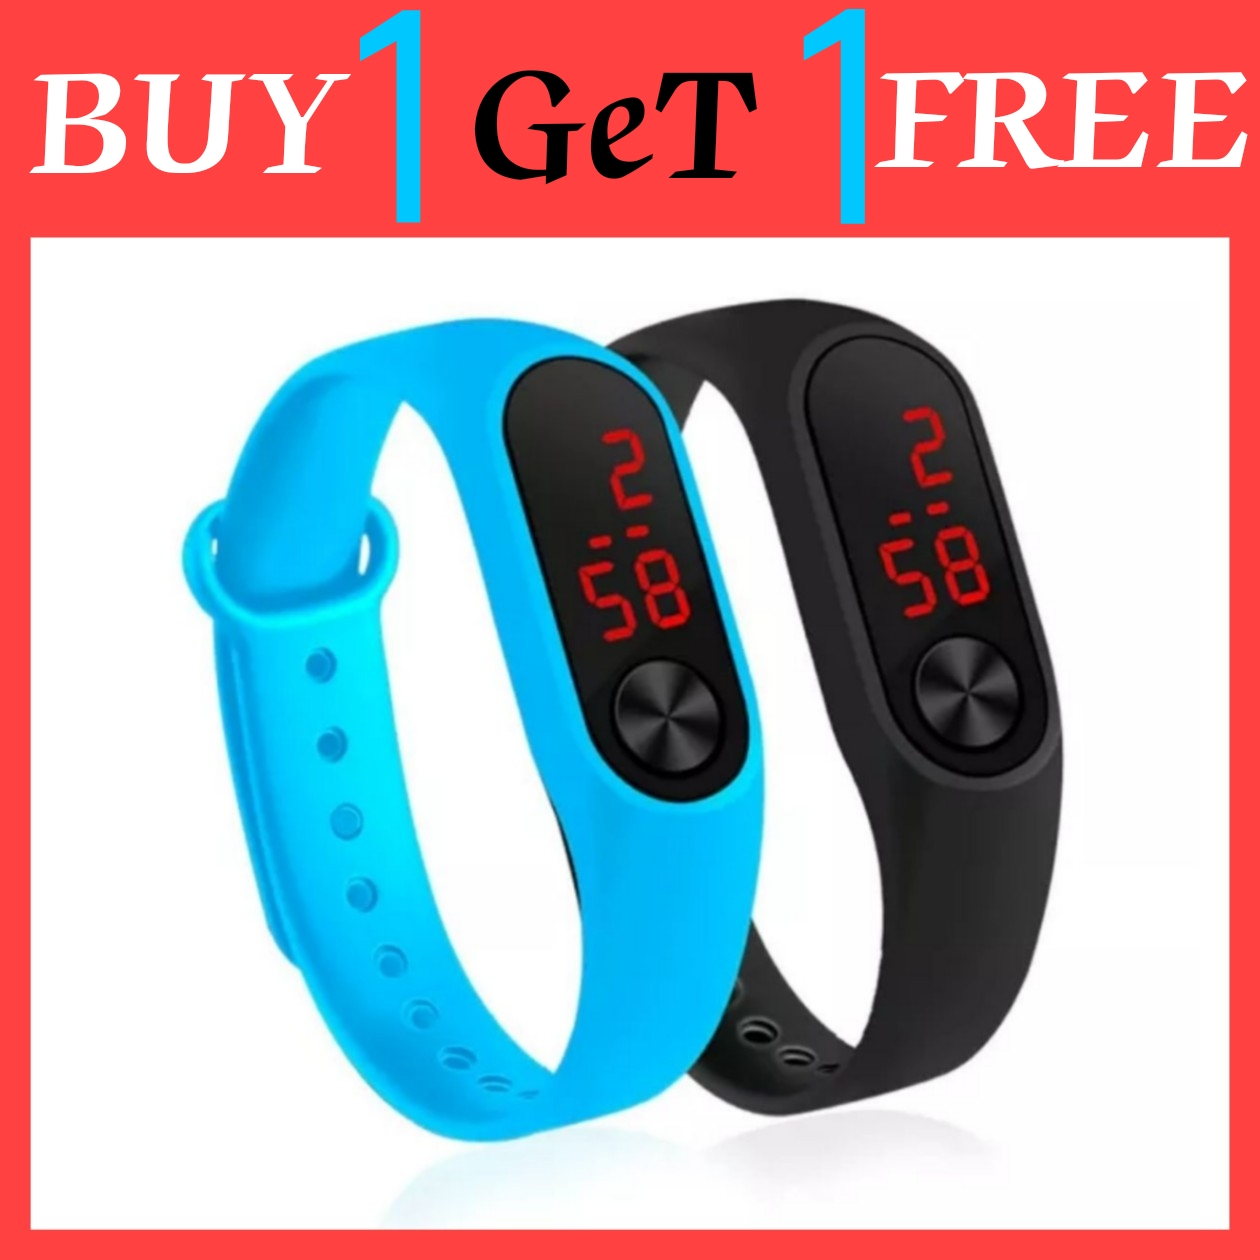 M3 watch, m3 watch for boys | Pack of 2 M3 Touch Led Bracelet Digital Watch Band | Luxury Sport Casual M3 Led Bracelet Digital Watch Band for Boys and Girls | Smart band watch | M3 Digital Watch Band Led | M3 watch band | wrist watch